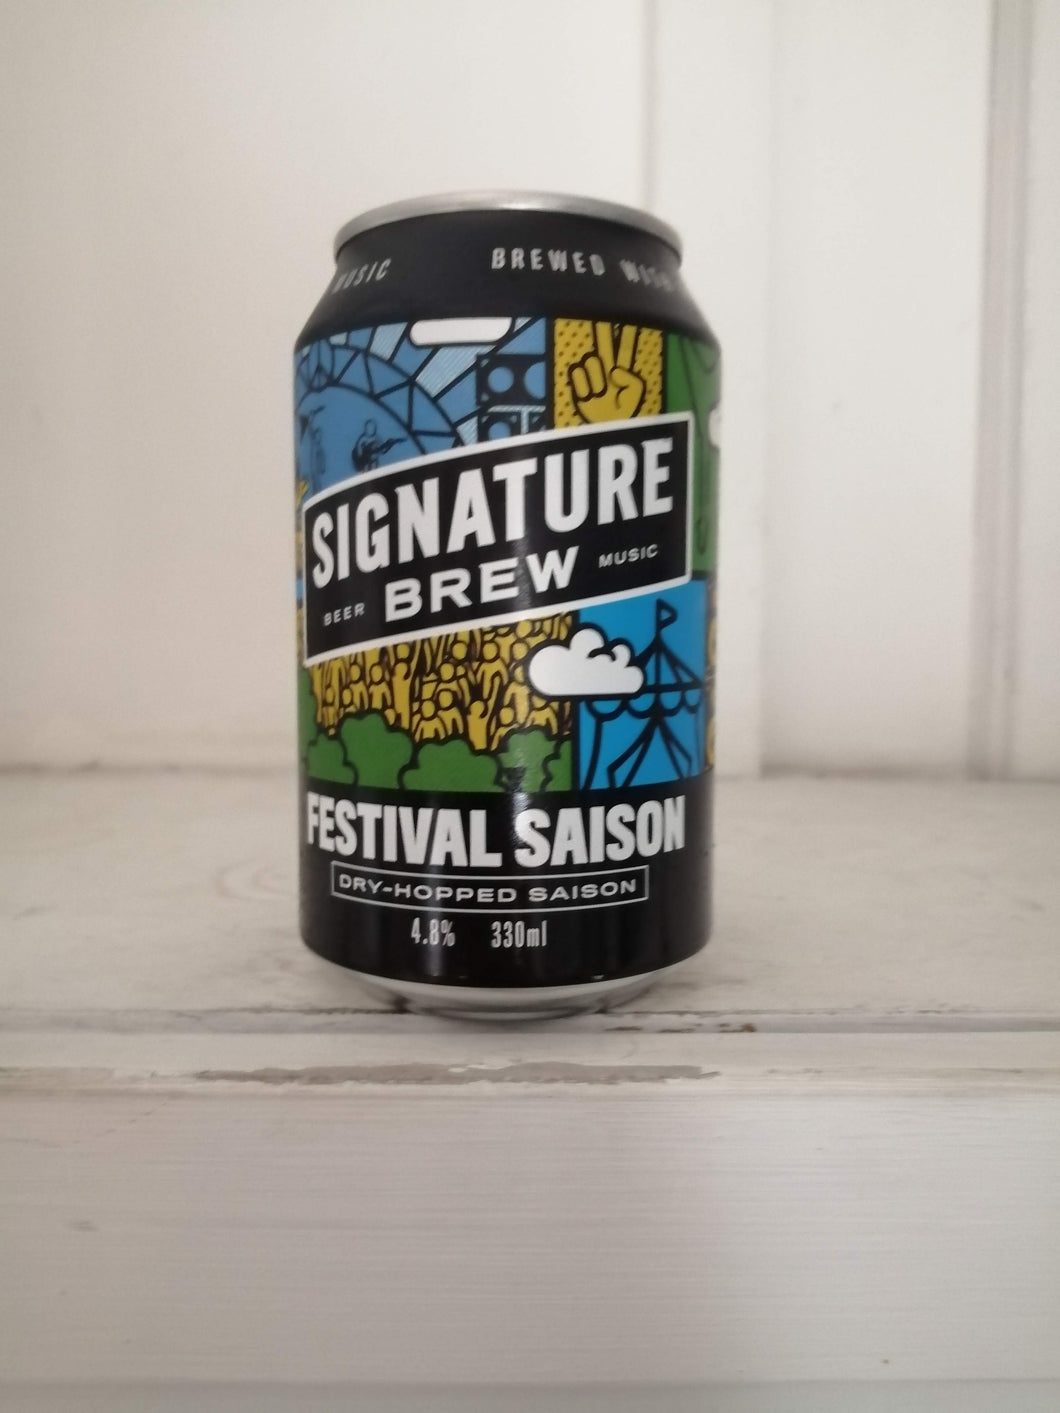 Signature Brew Festival Saison 4.8% (330ml can)